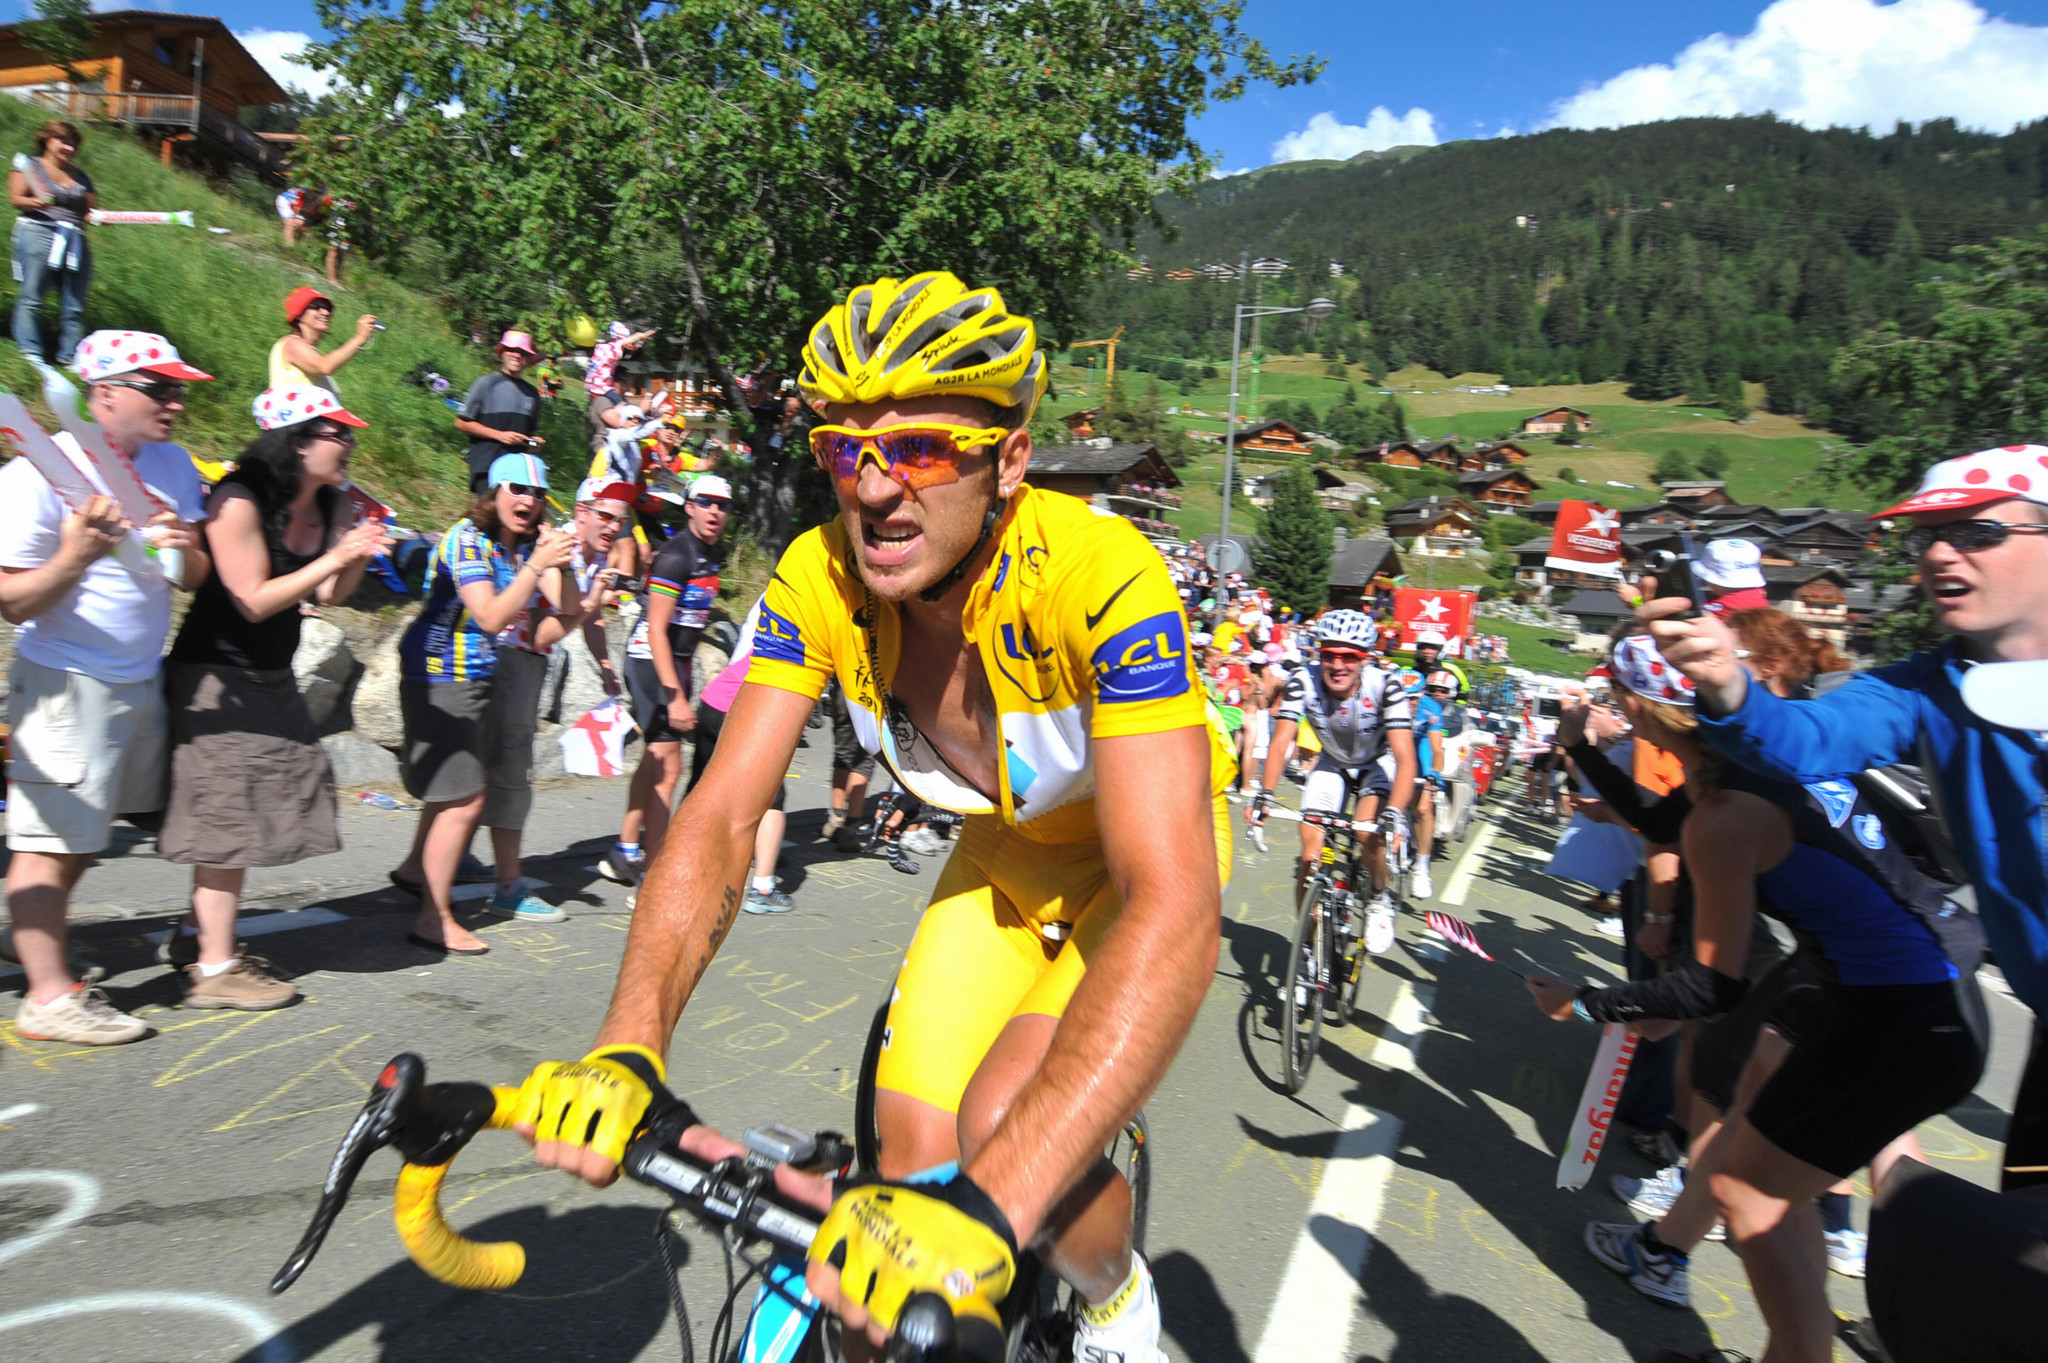 Former Tour de France race leader Nocentini handed four-year doping ban